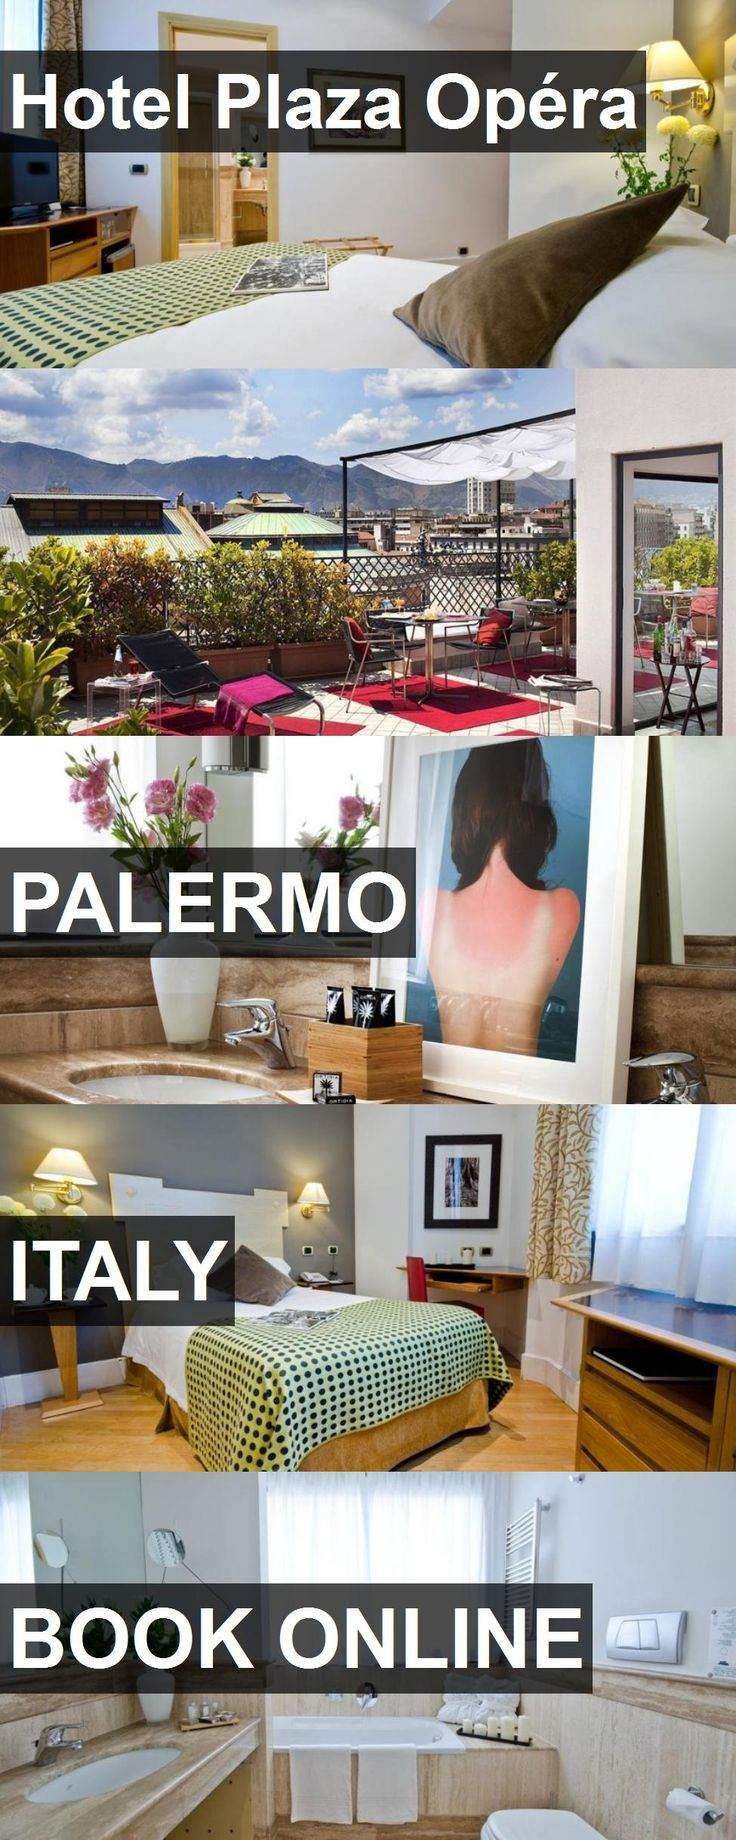 Hotel Hotel Plaza Opéra in Palermo, Italy. For more information, photos, reviews and best prices please follow the link. #Italy #Palermo #HotelPlazaOpéra #hotel #travel #vacation